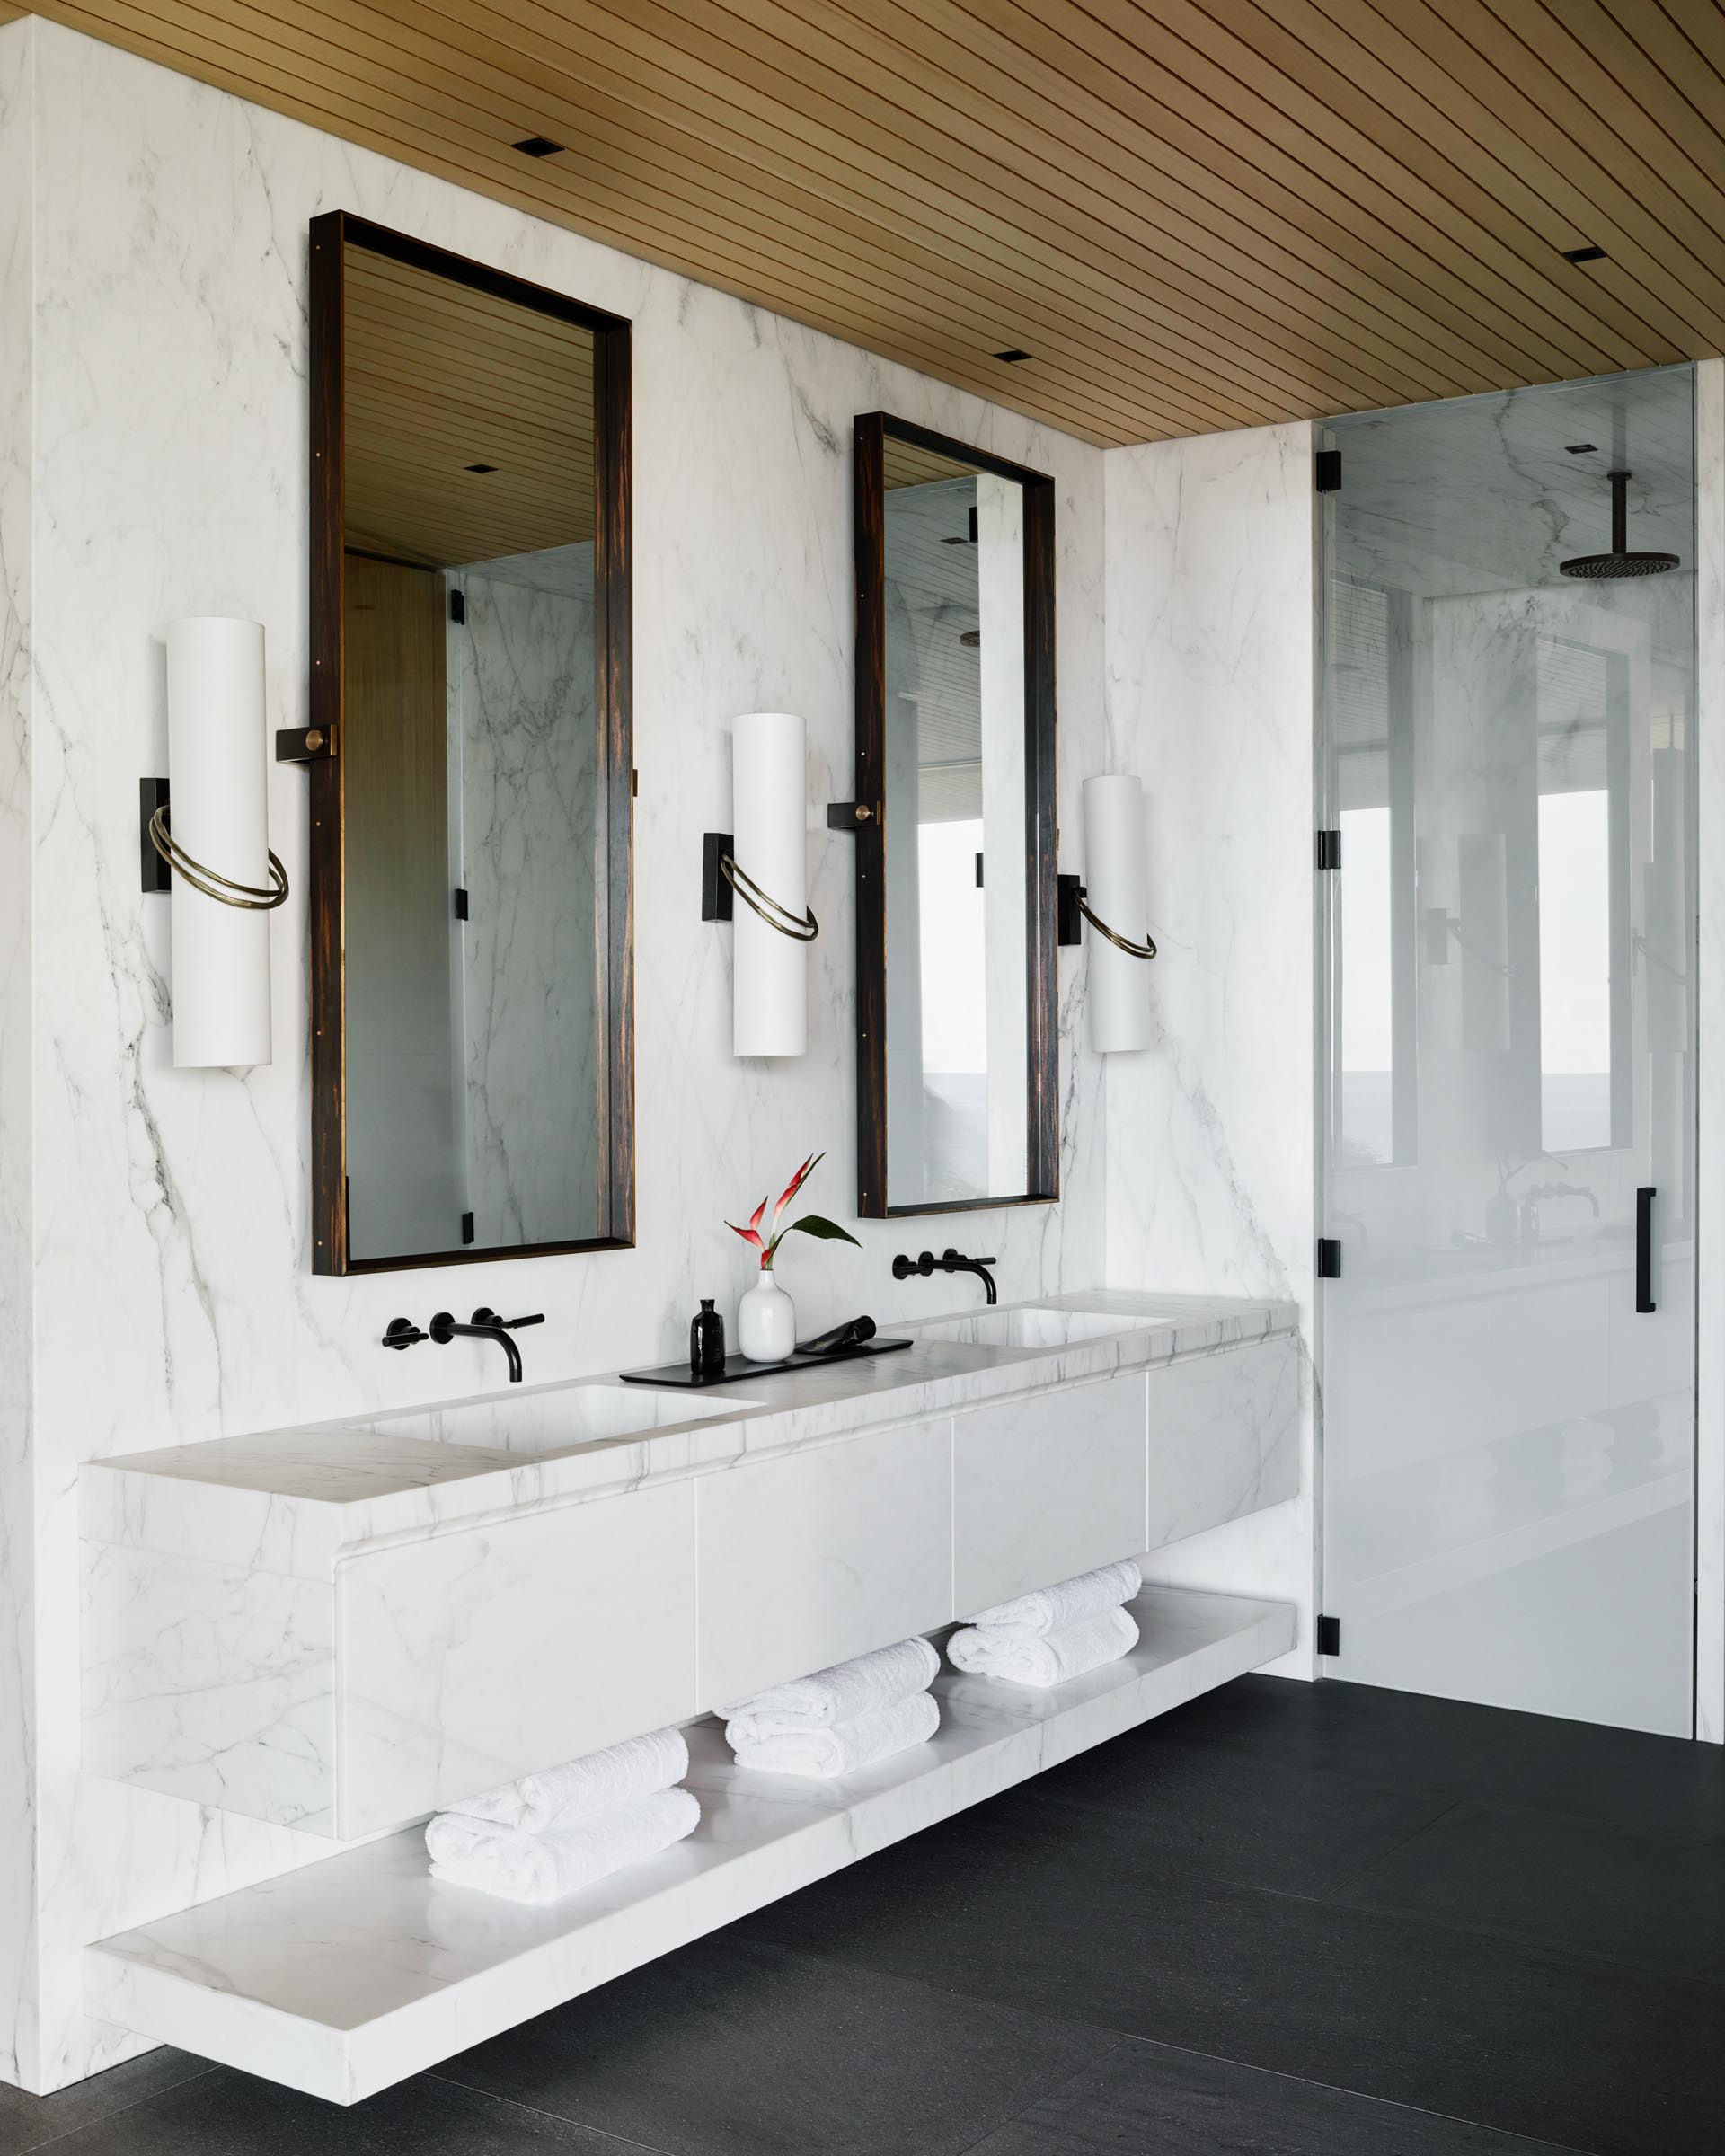 In the master bathroom, large format gray tiles cover the floor, vertical wood screens create privacy, and a white double-sink vanity floats above the ground and is adjacent to the glass-enclosed shower.